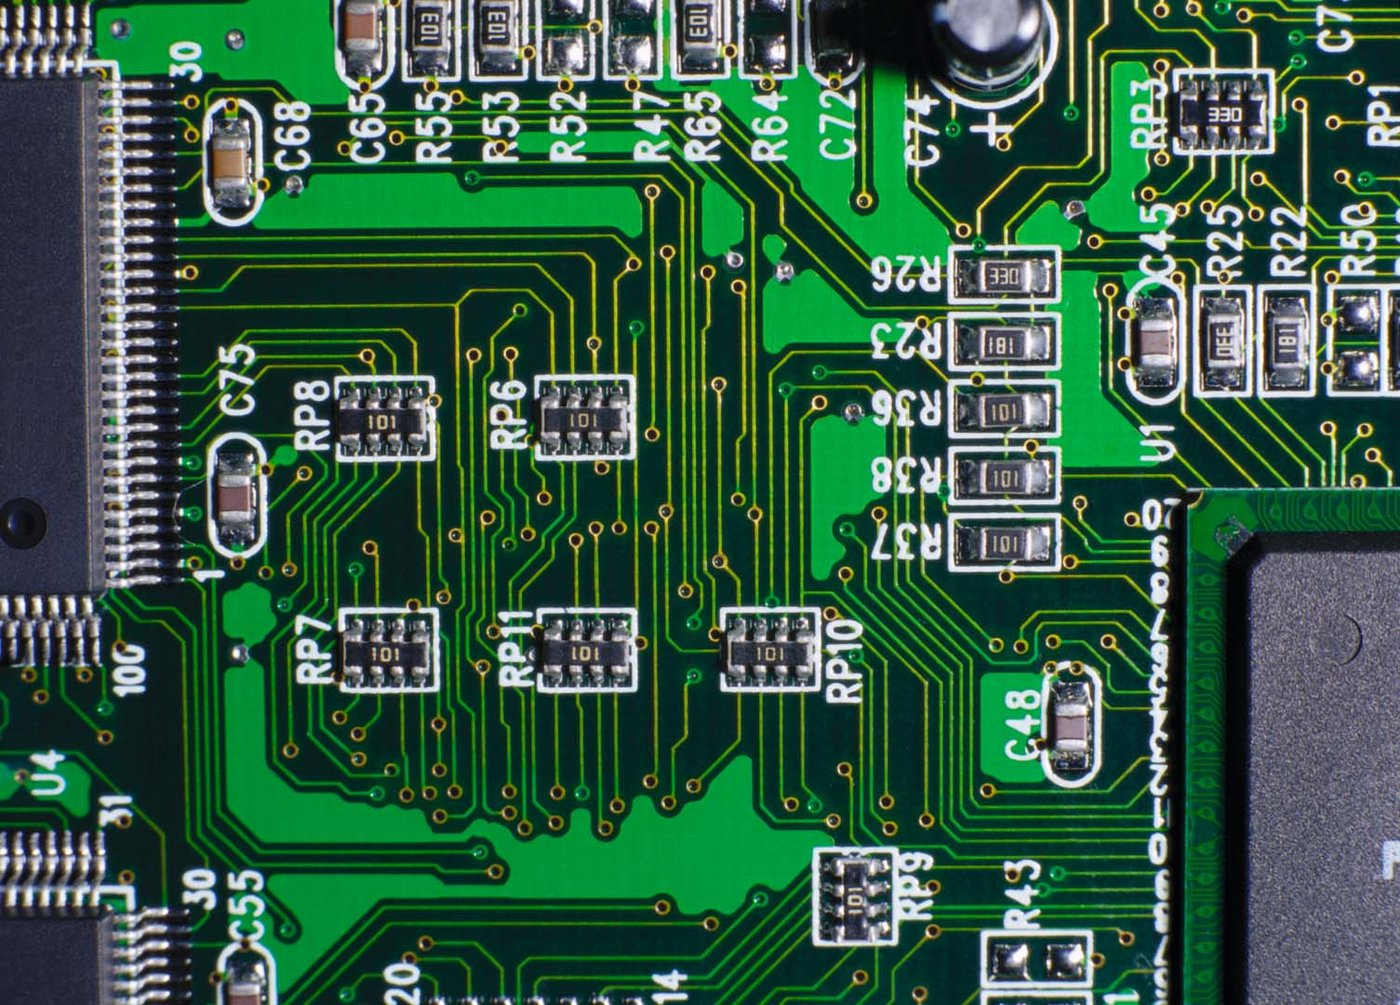 Integrated Circuit Codes Images Images Of Integrated Circuit Codes